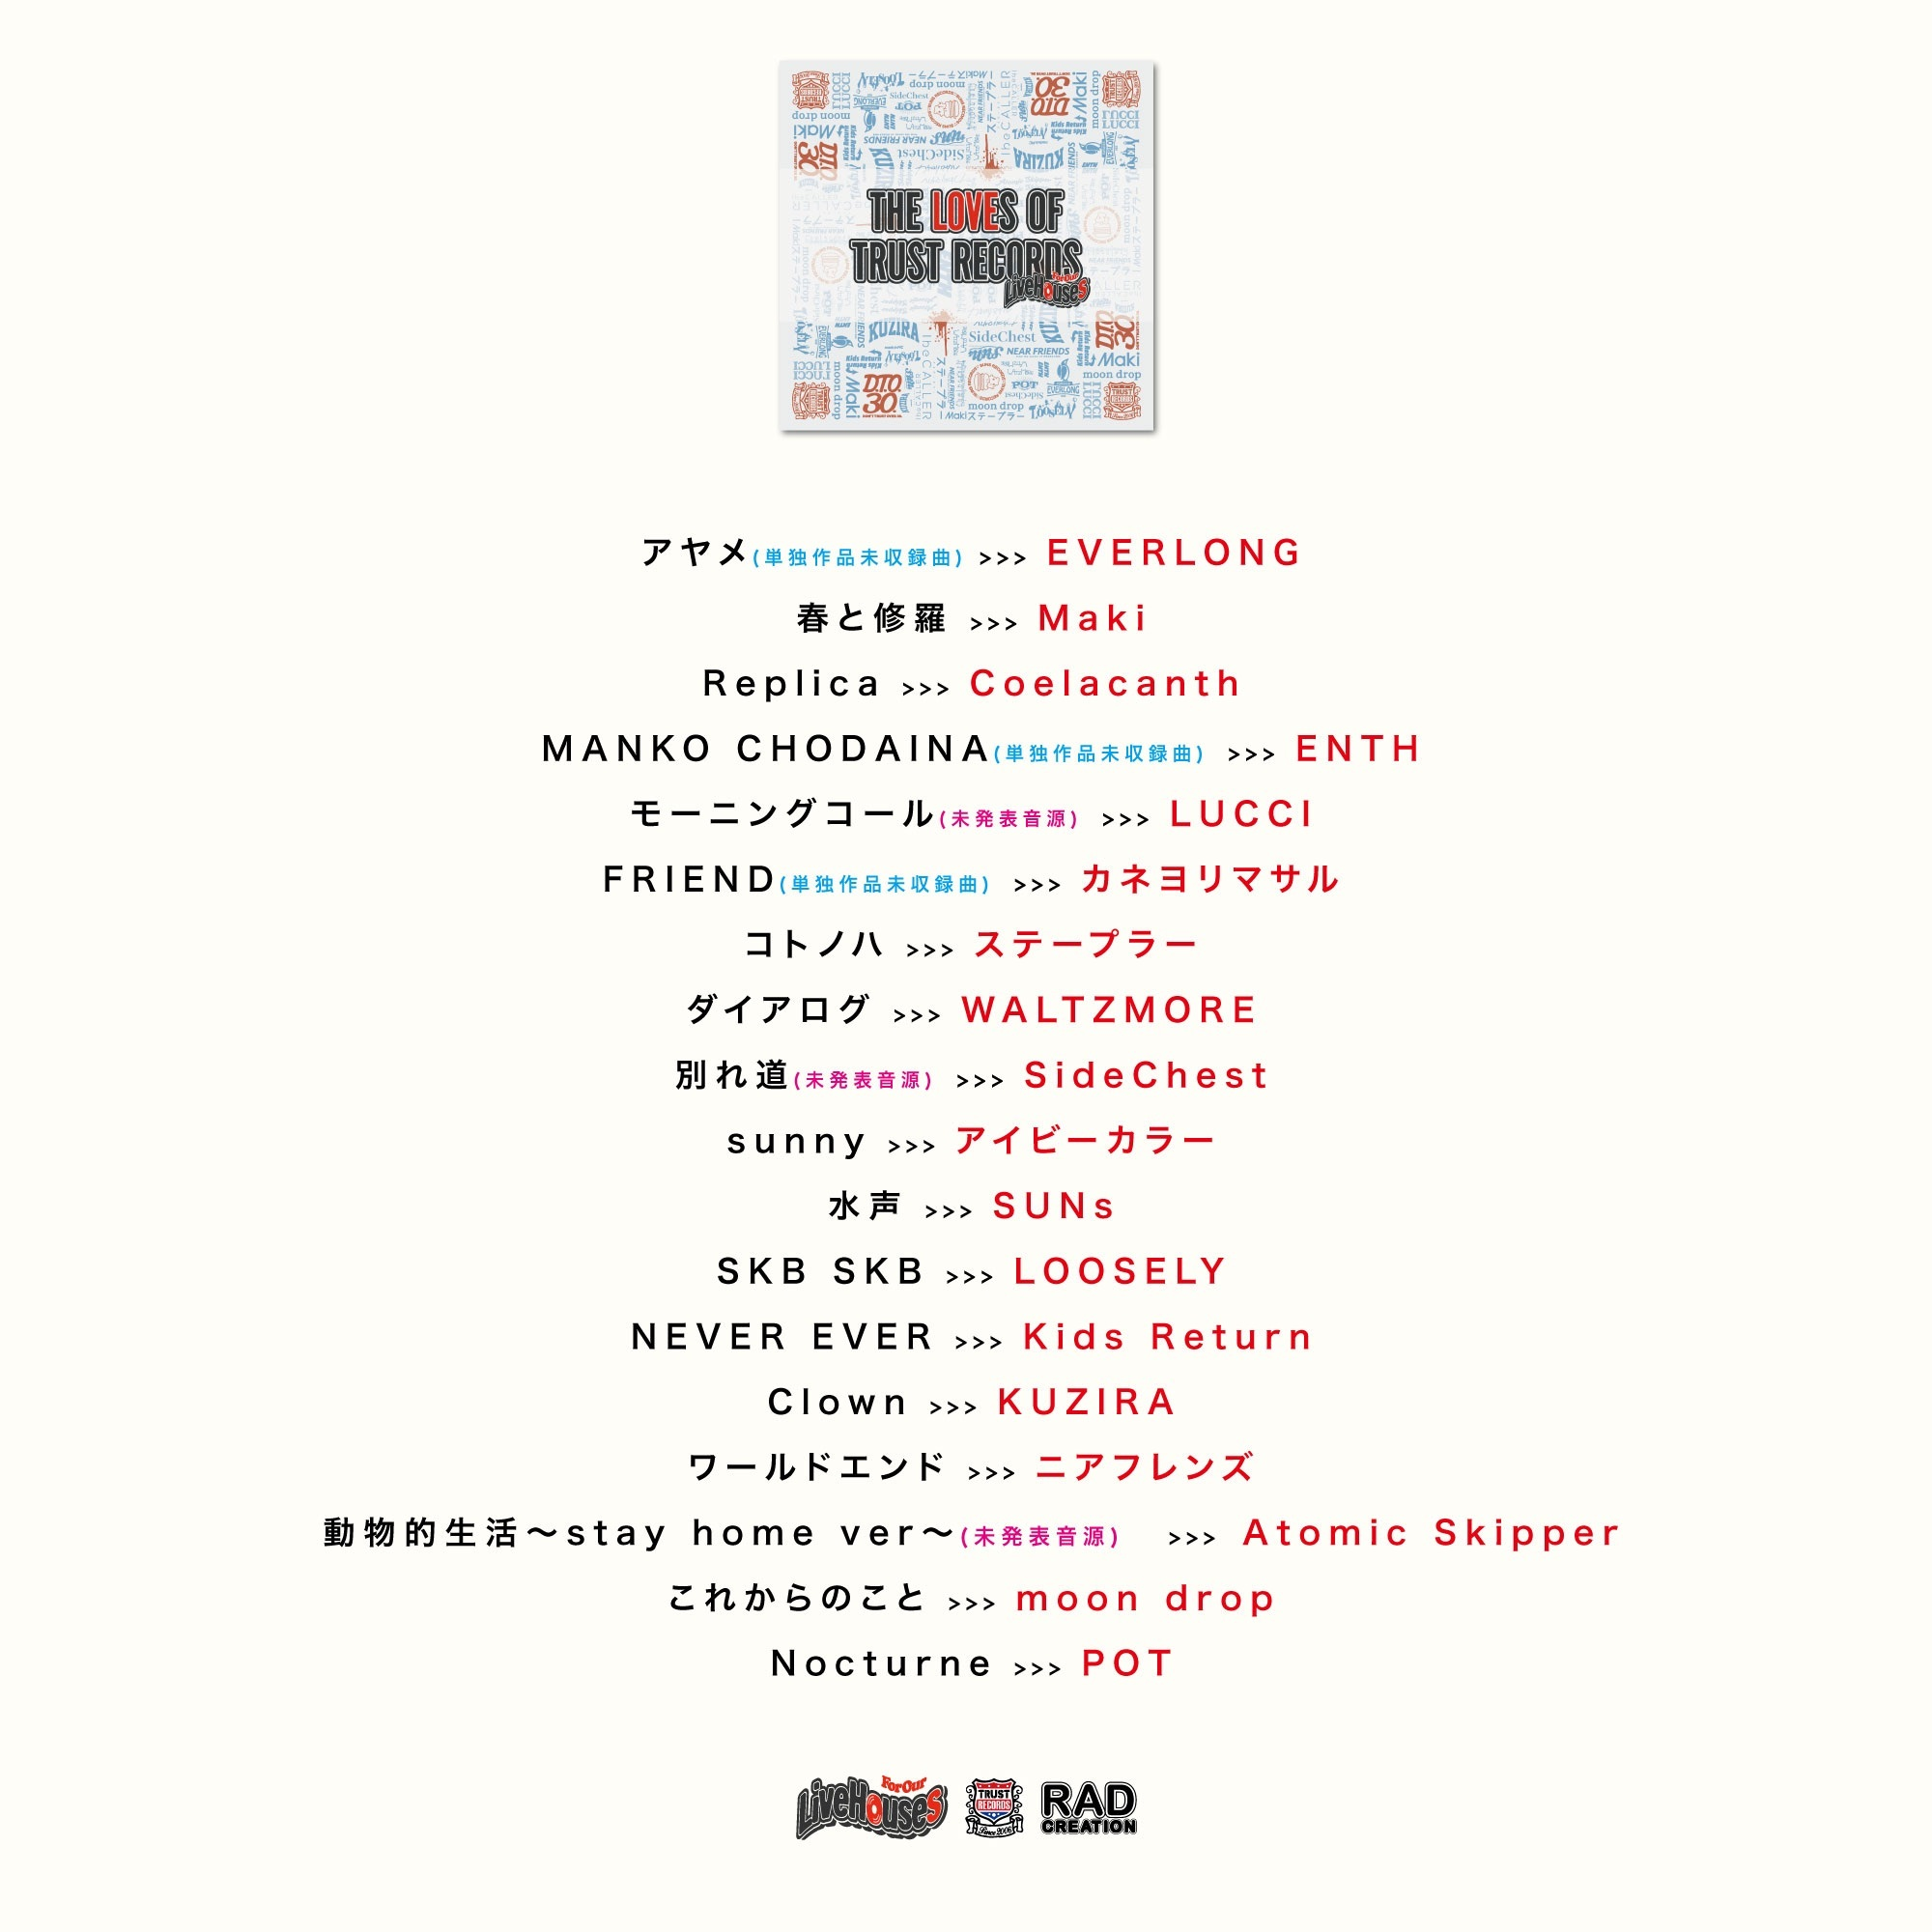 『V.A THE LOVES OF TRUST RECORDS -For Our Live Houses-』